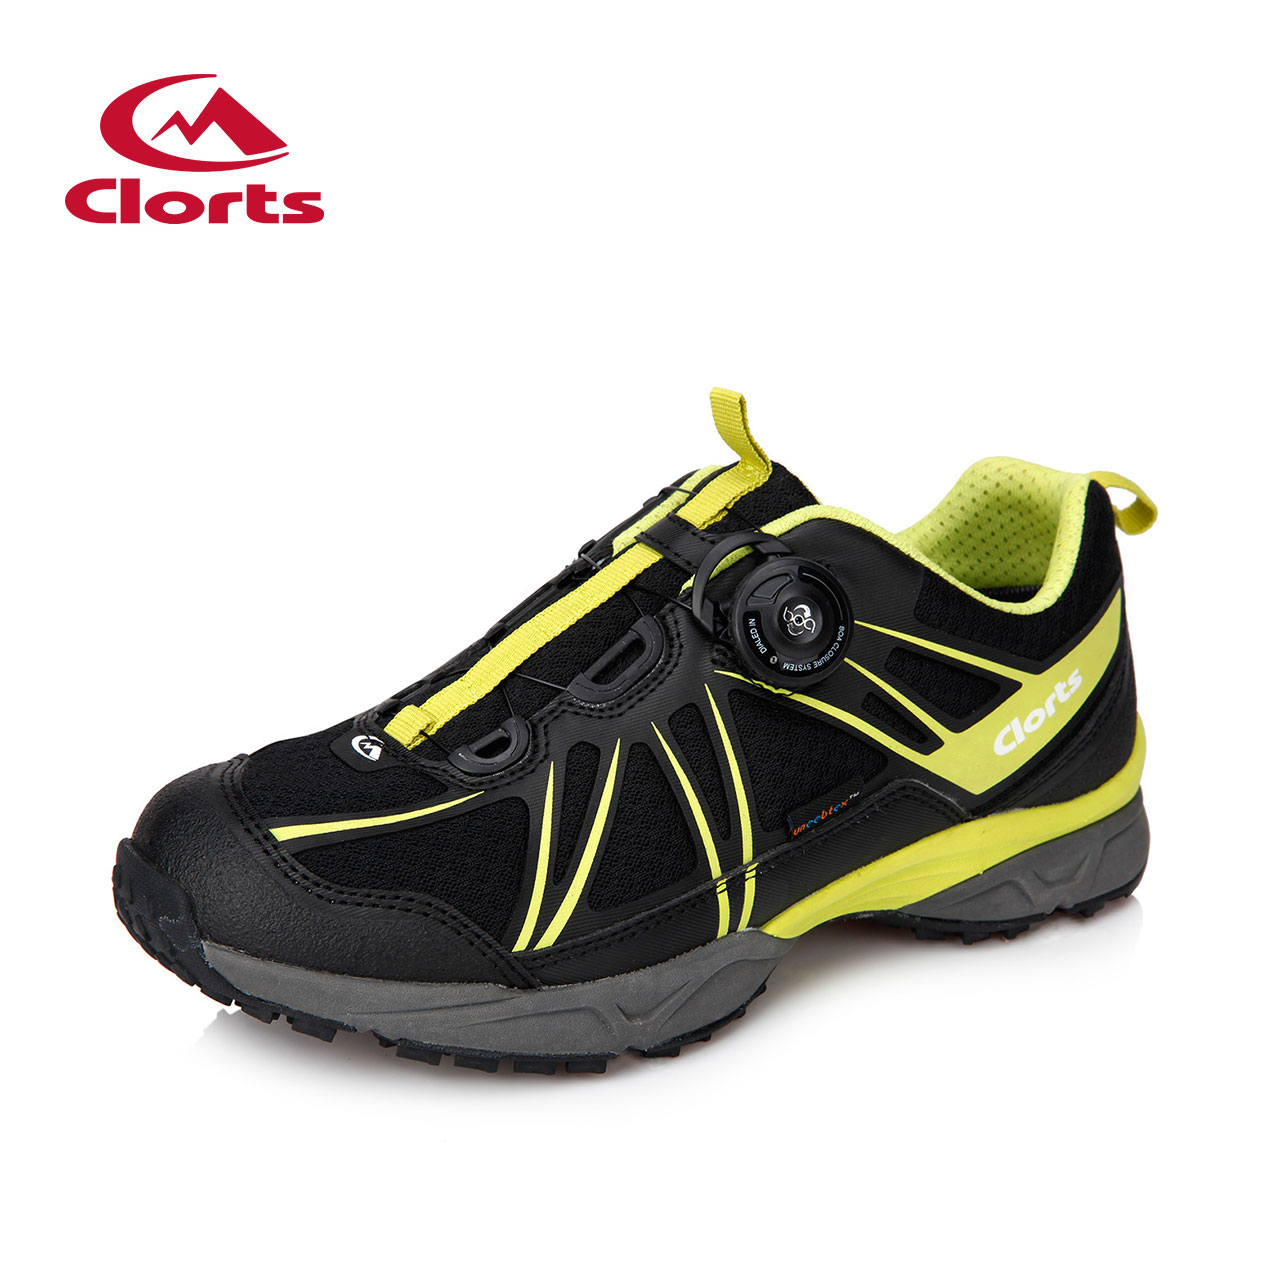 84c98b3ce8f8 Clorts los relaxation boa rapid reaction shoes cross country running shoes  lightweight sports shoes breathable summer